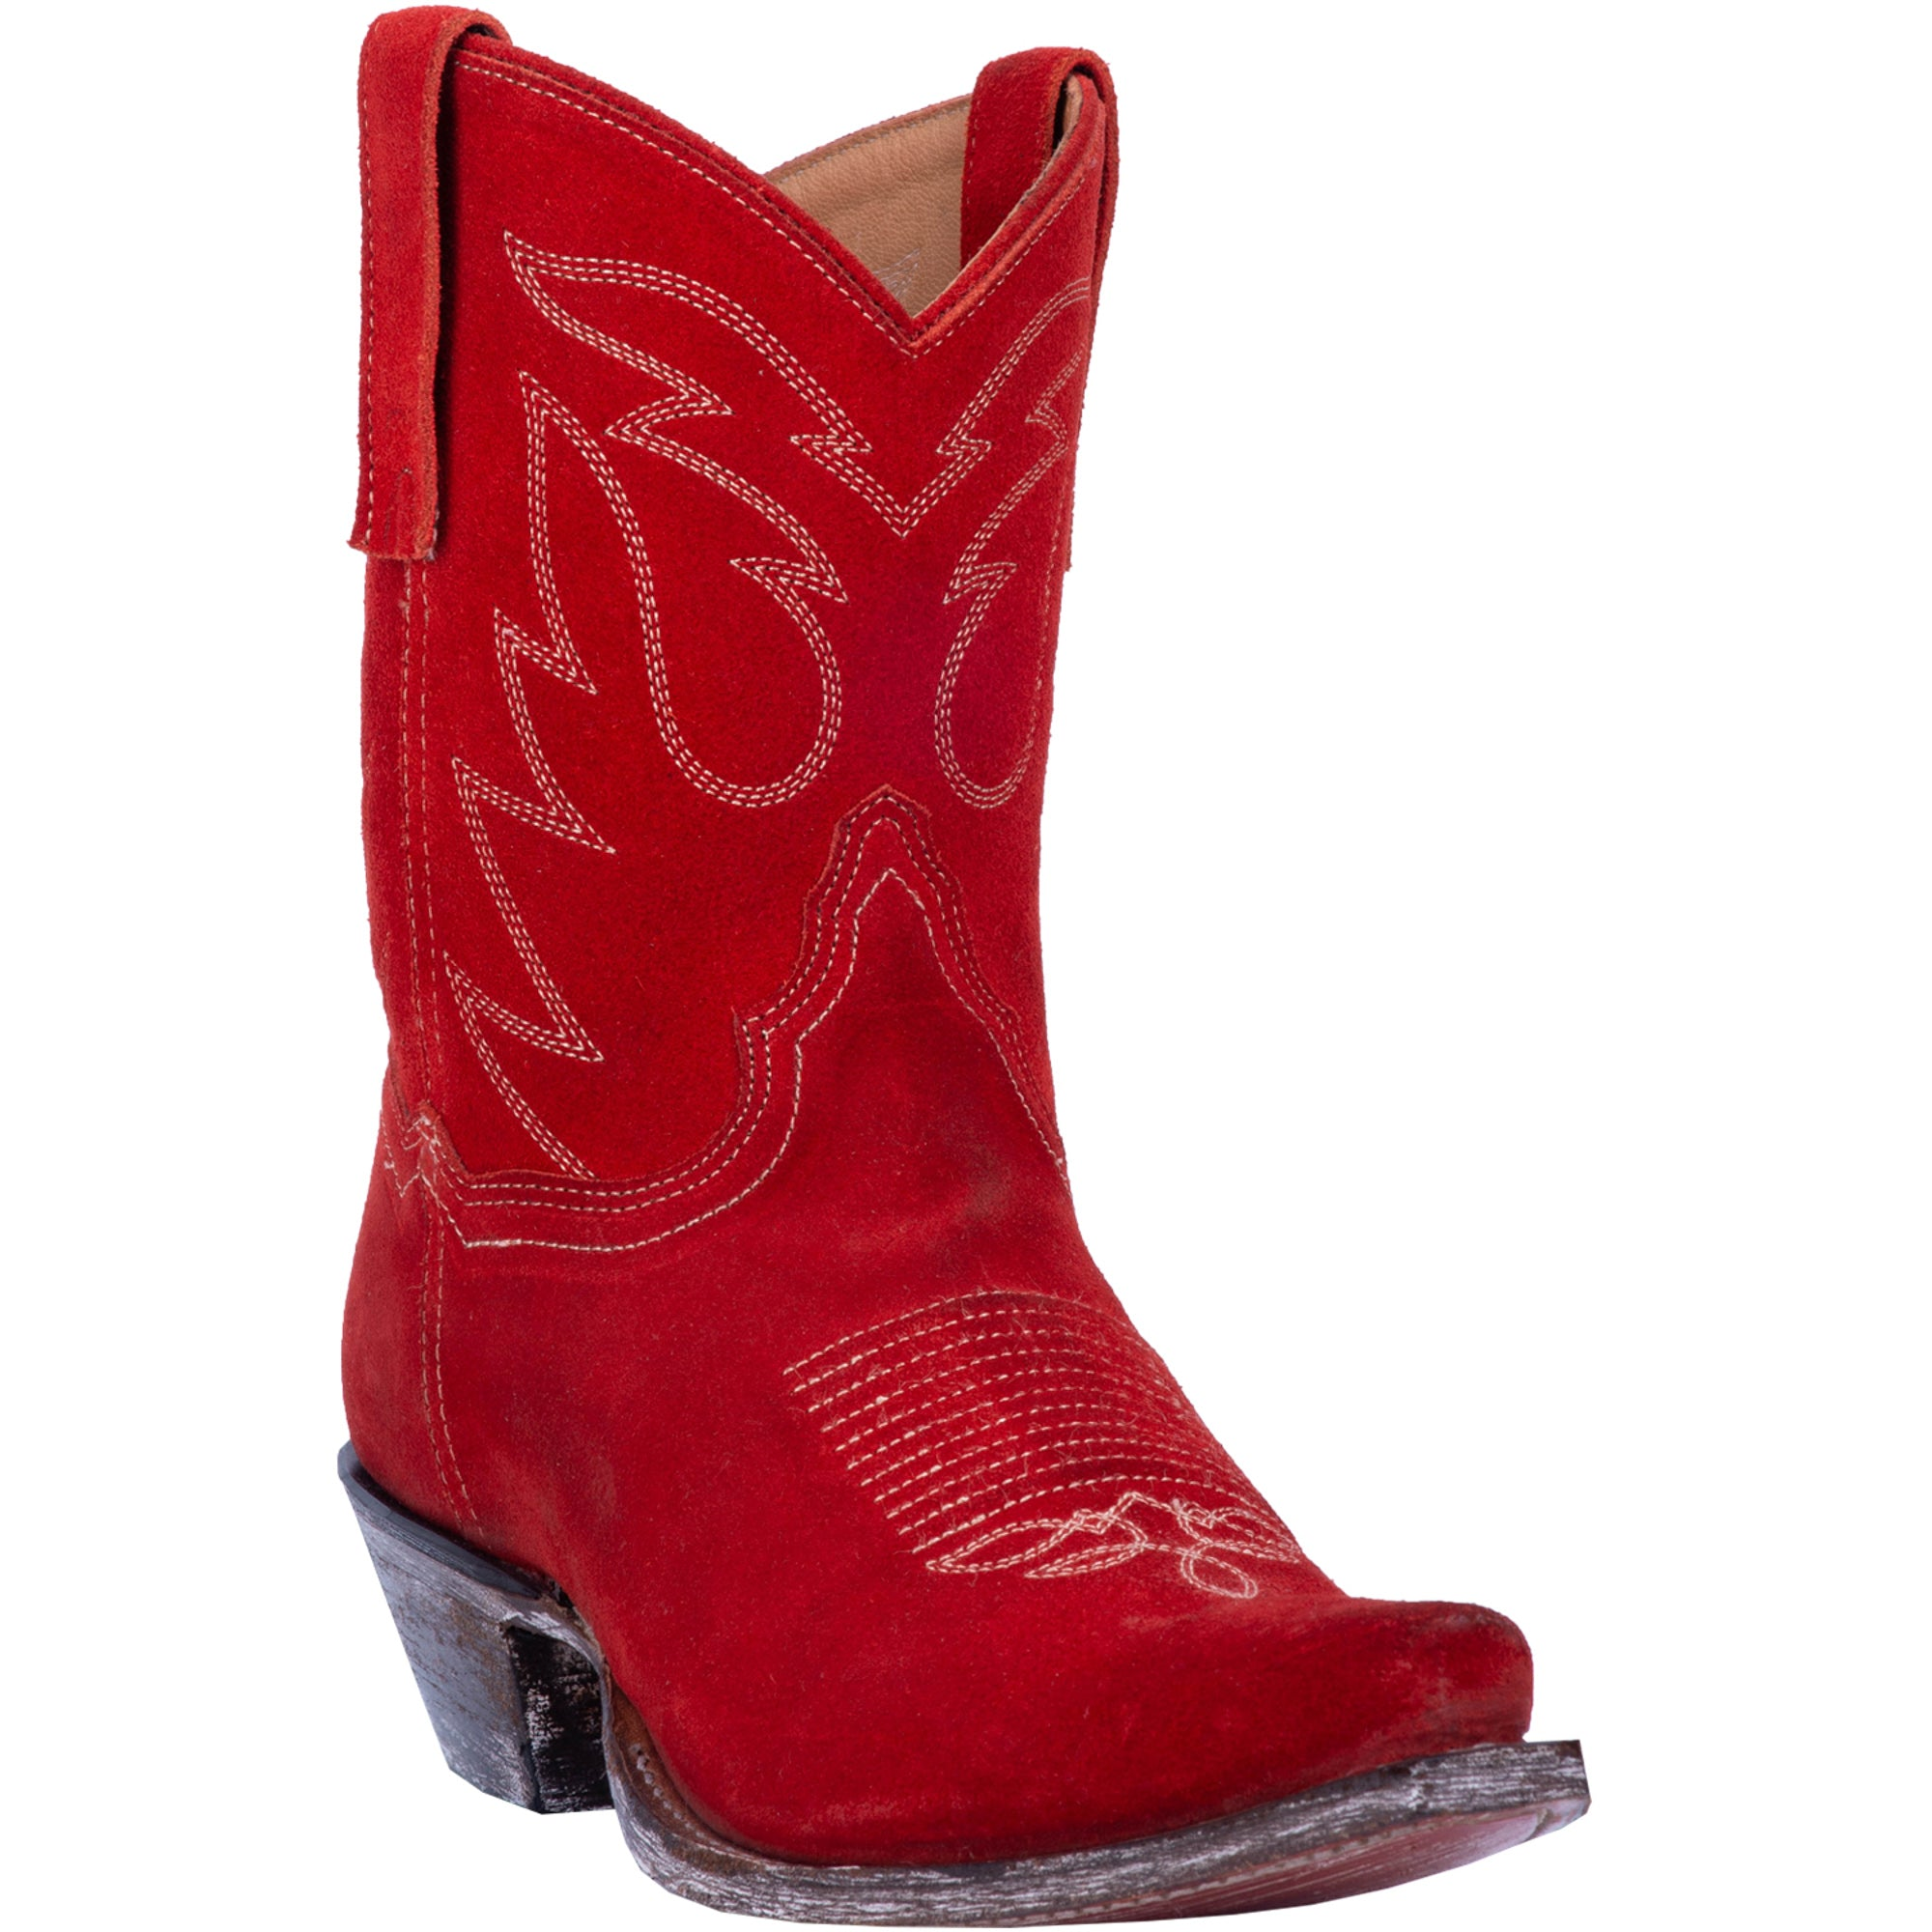 Red Leather Cowboy Boots For Women